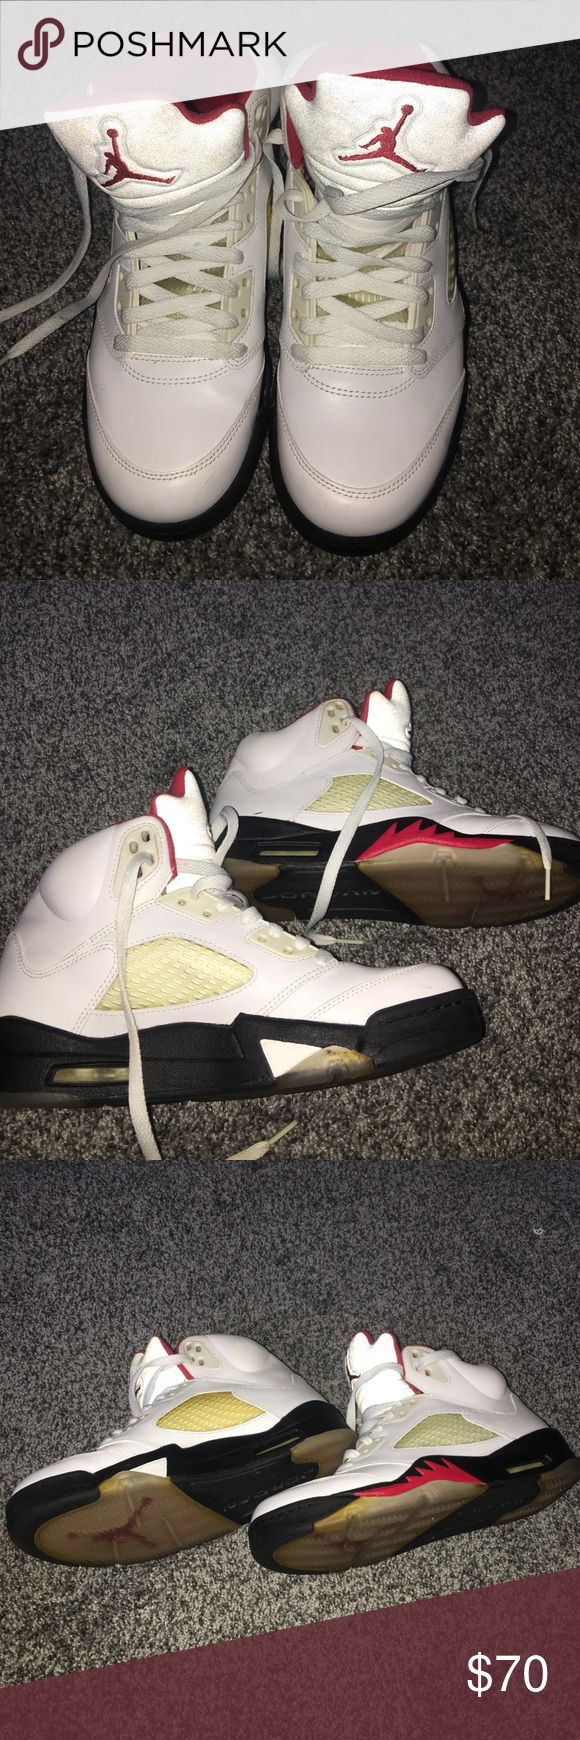 ‼️Nike Retro 5 Air Jordan's 😍😍😍 Great Shoe! Jordan's after all. What more is there to say! 😍😍😍 Nike Shoes Sneakers